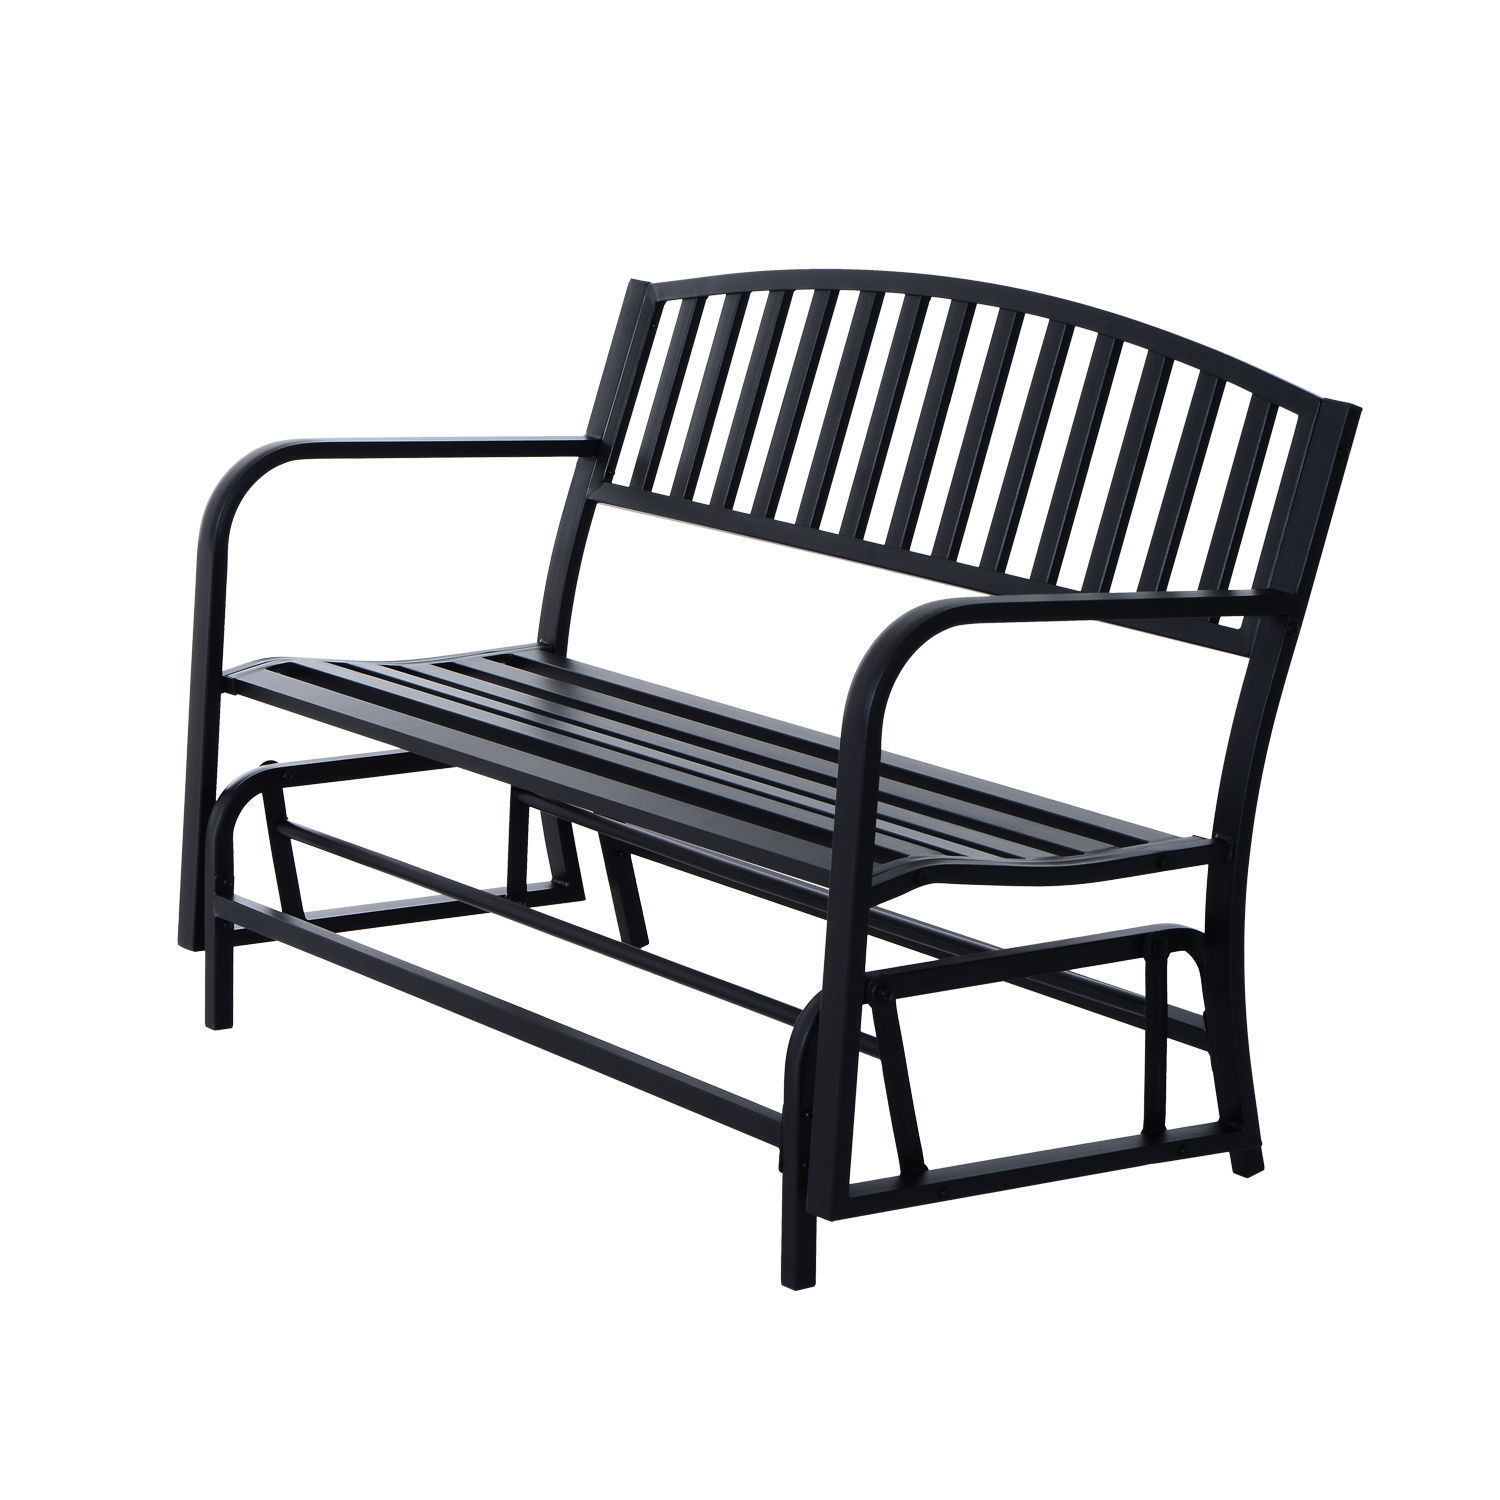 "GHP Outdoor 50.5""Wx26""Dx35""H Powder Coated Steel Freestanding Swing Glider Bench"